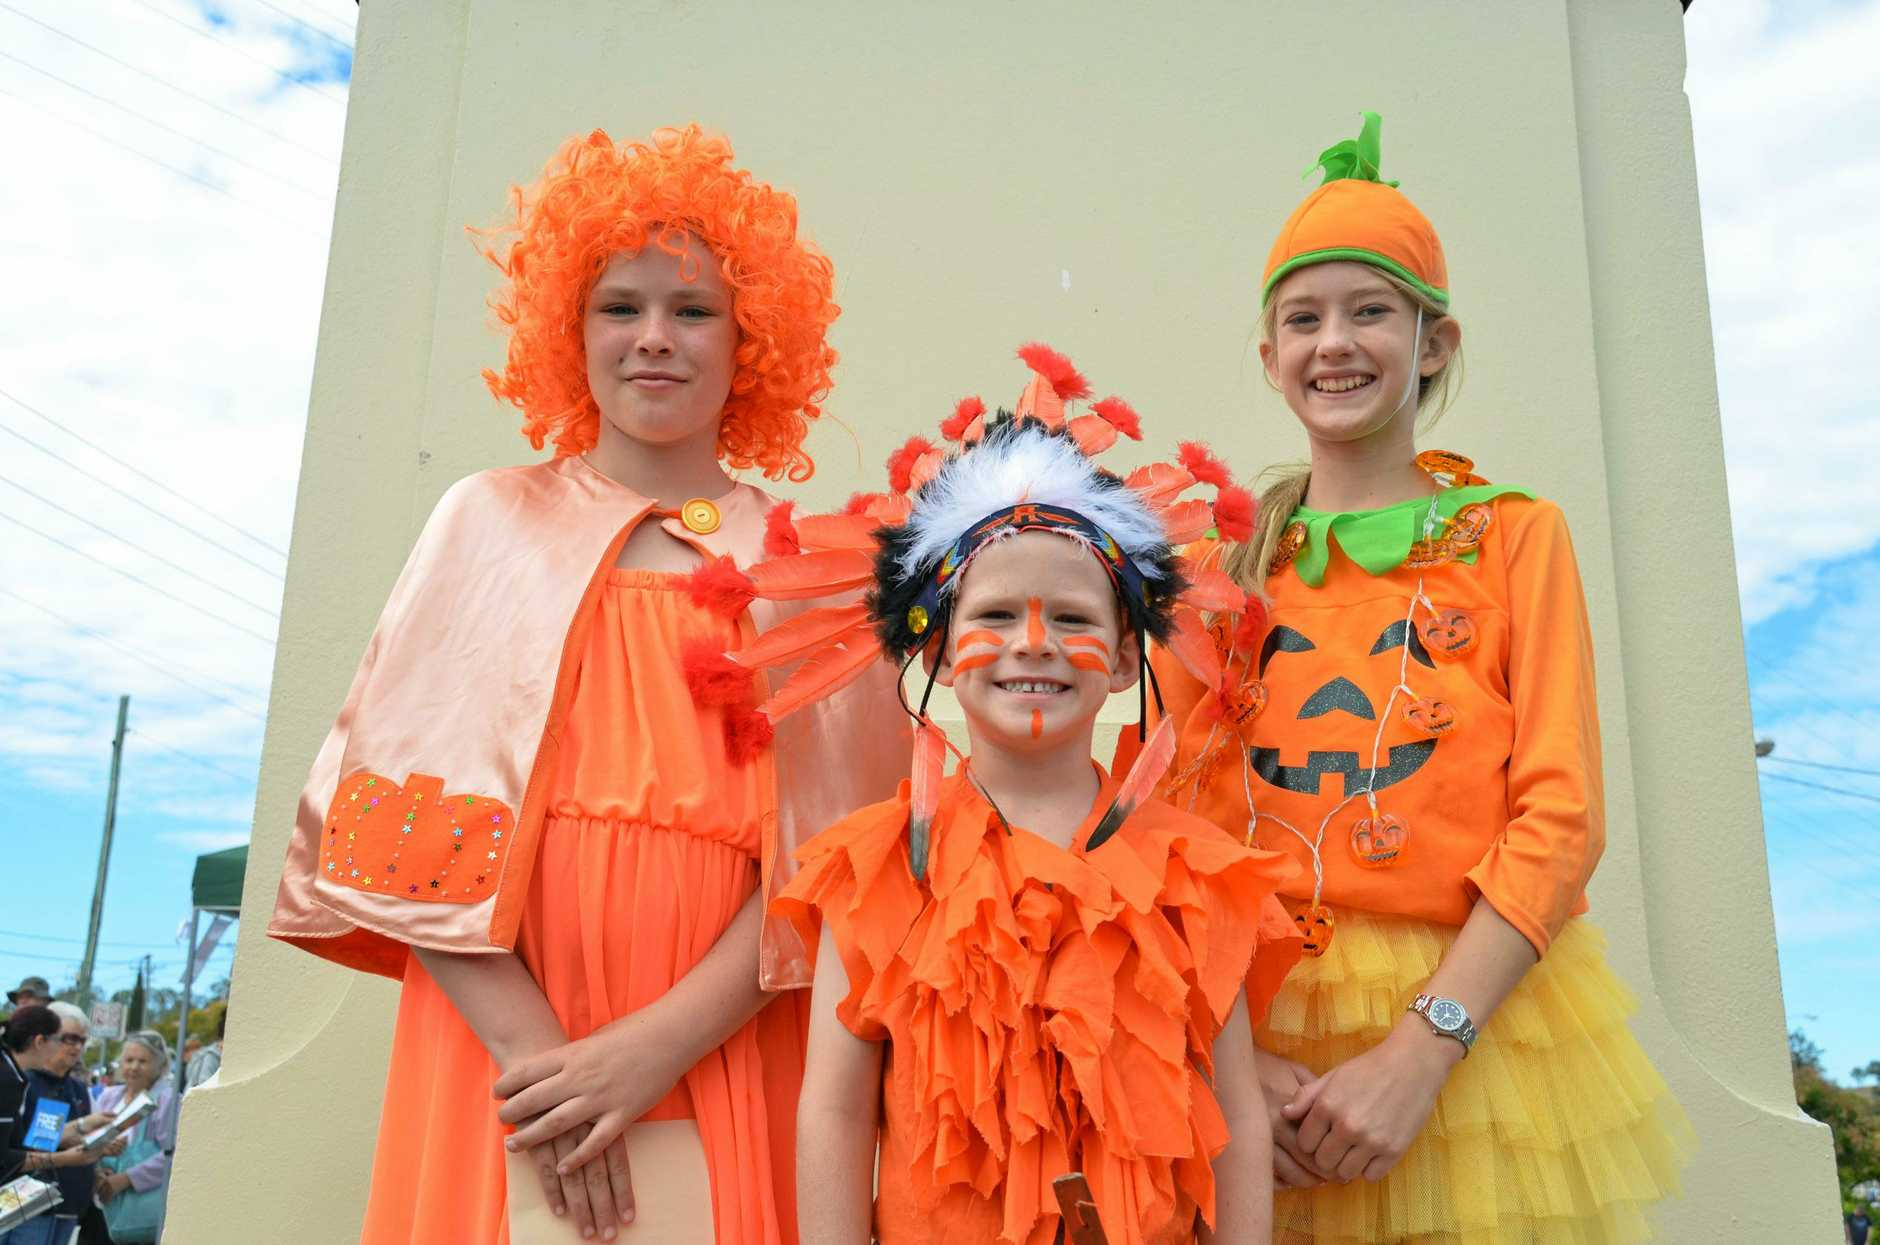 Maddison Richards, Eli Richards and Renee Gillard in their best and brightest pumpkin outfits at the Goomeri Pumpkin Festival on May 29, 2016.